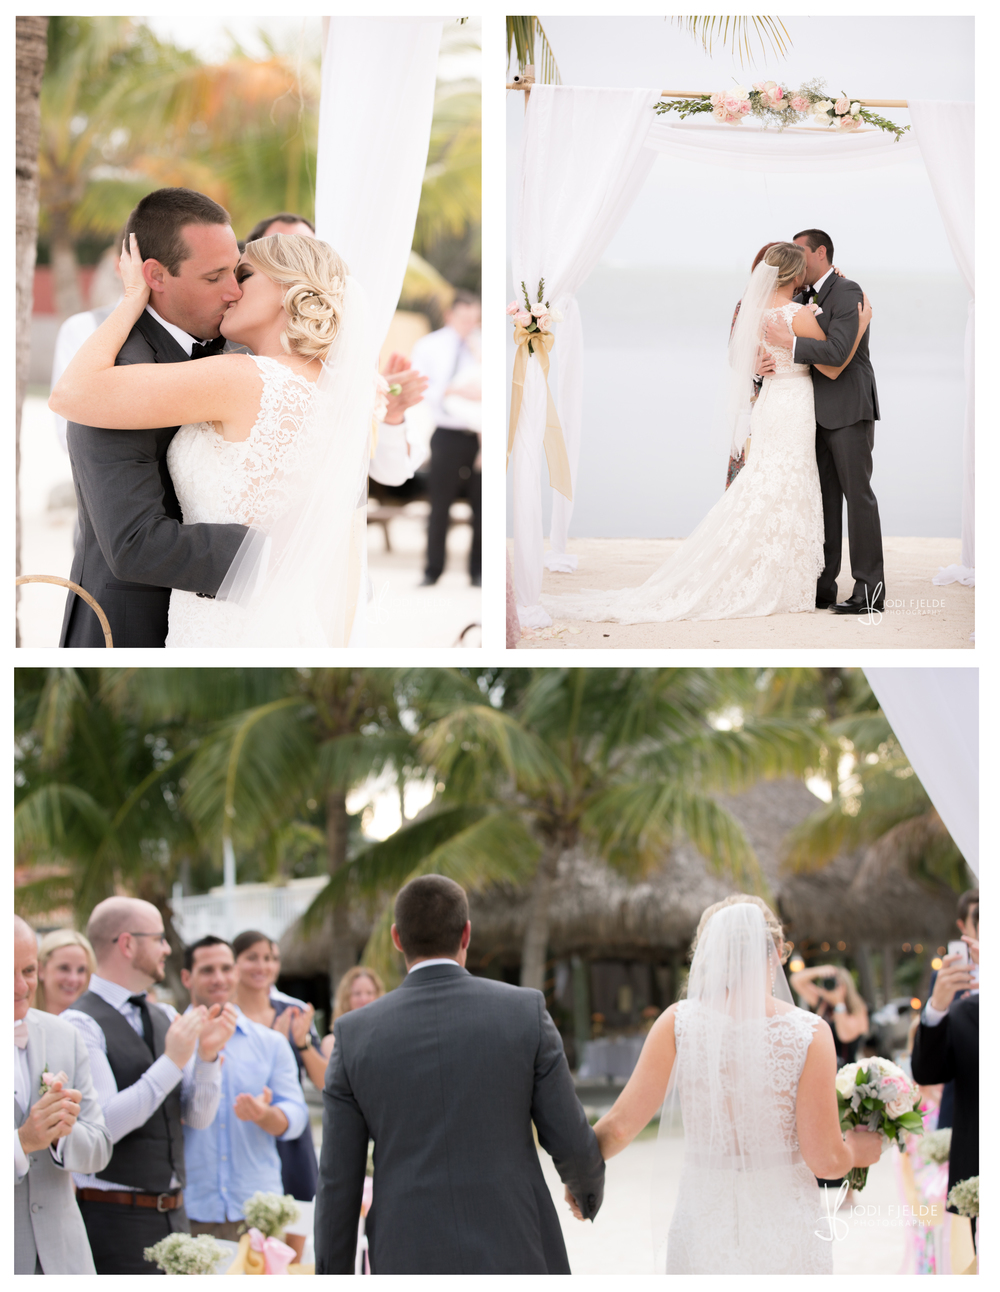 Cocconut_Cove_&_ Marina_ wedding_Kalie_and_Kurt 29.jpg